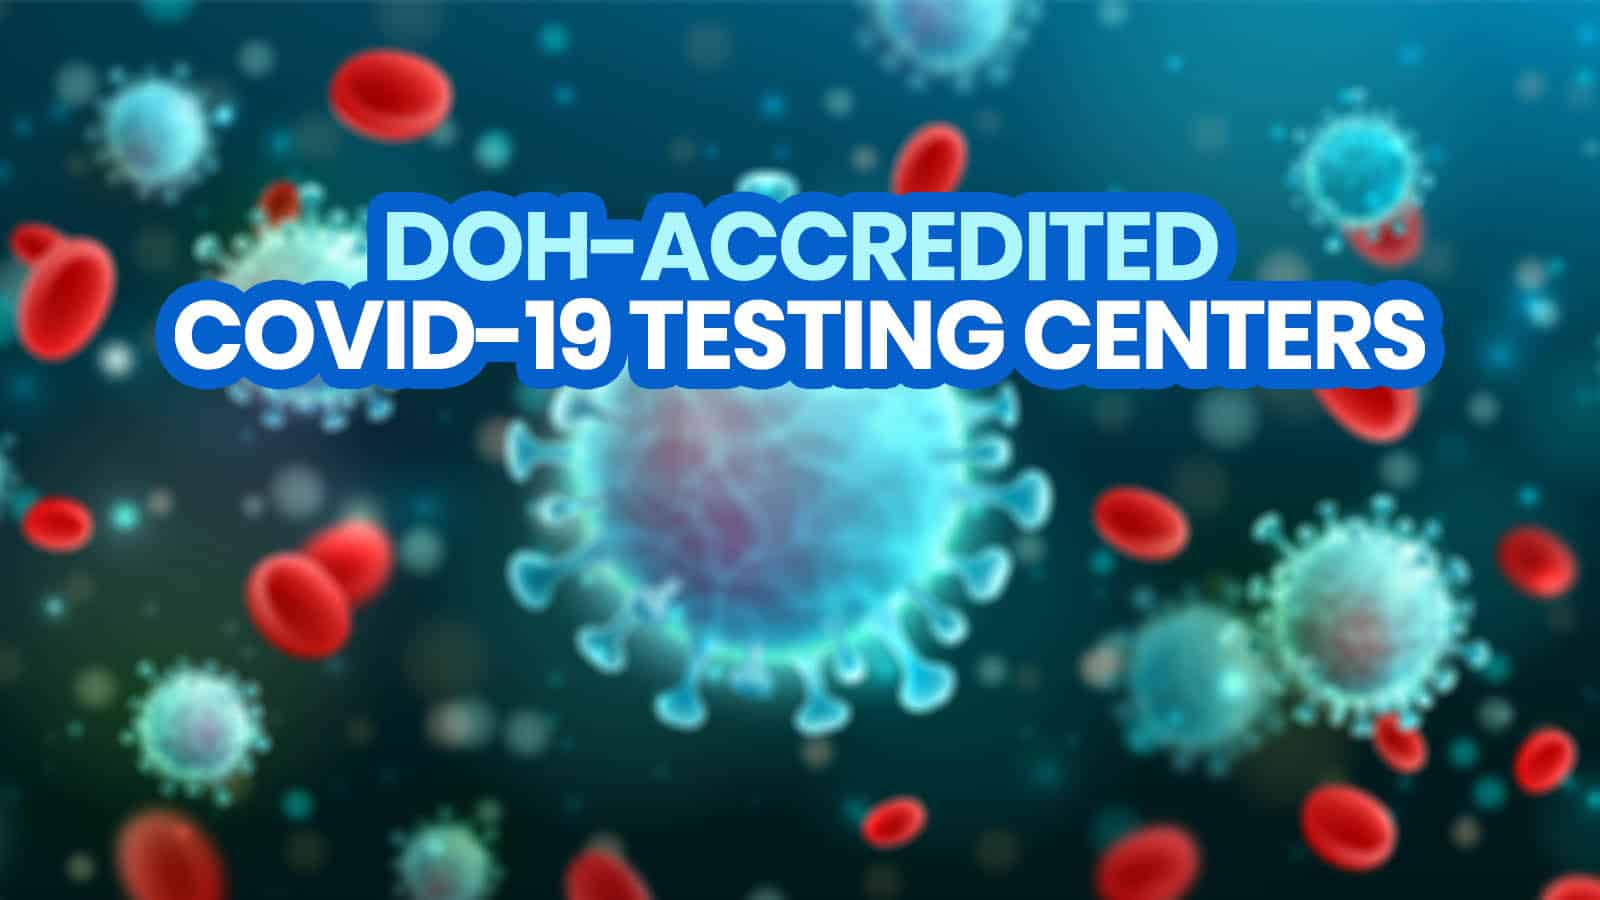 2021 List of DOH-Accredited & Licensed COVID-19 TESTING CENTERS